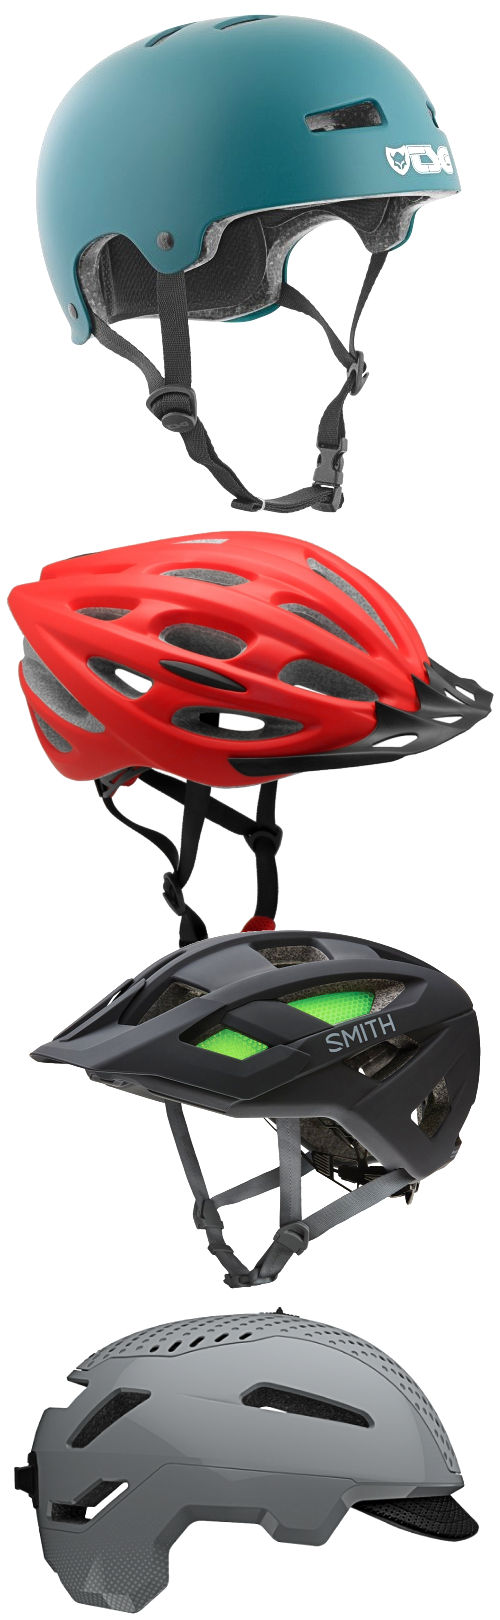 More Bicycle Helmets